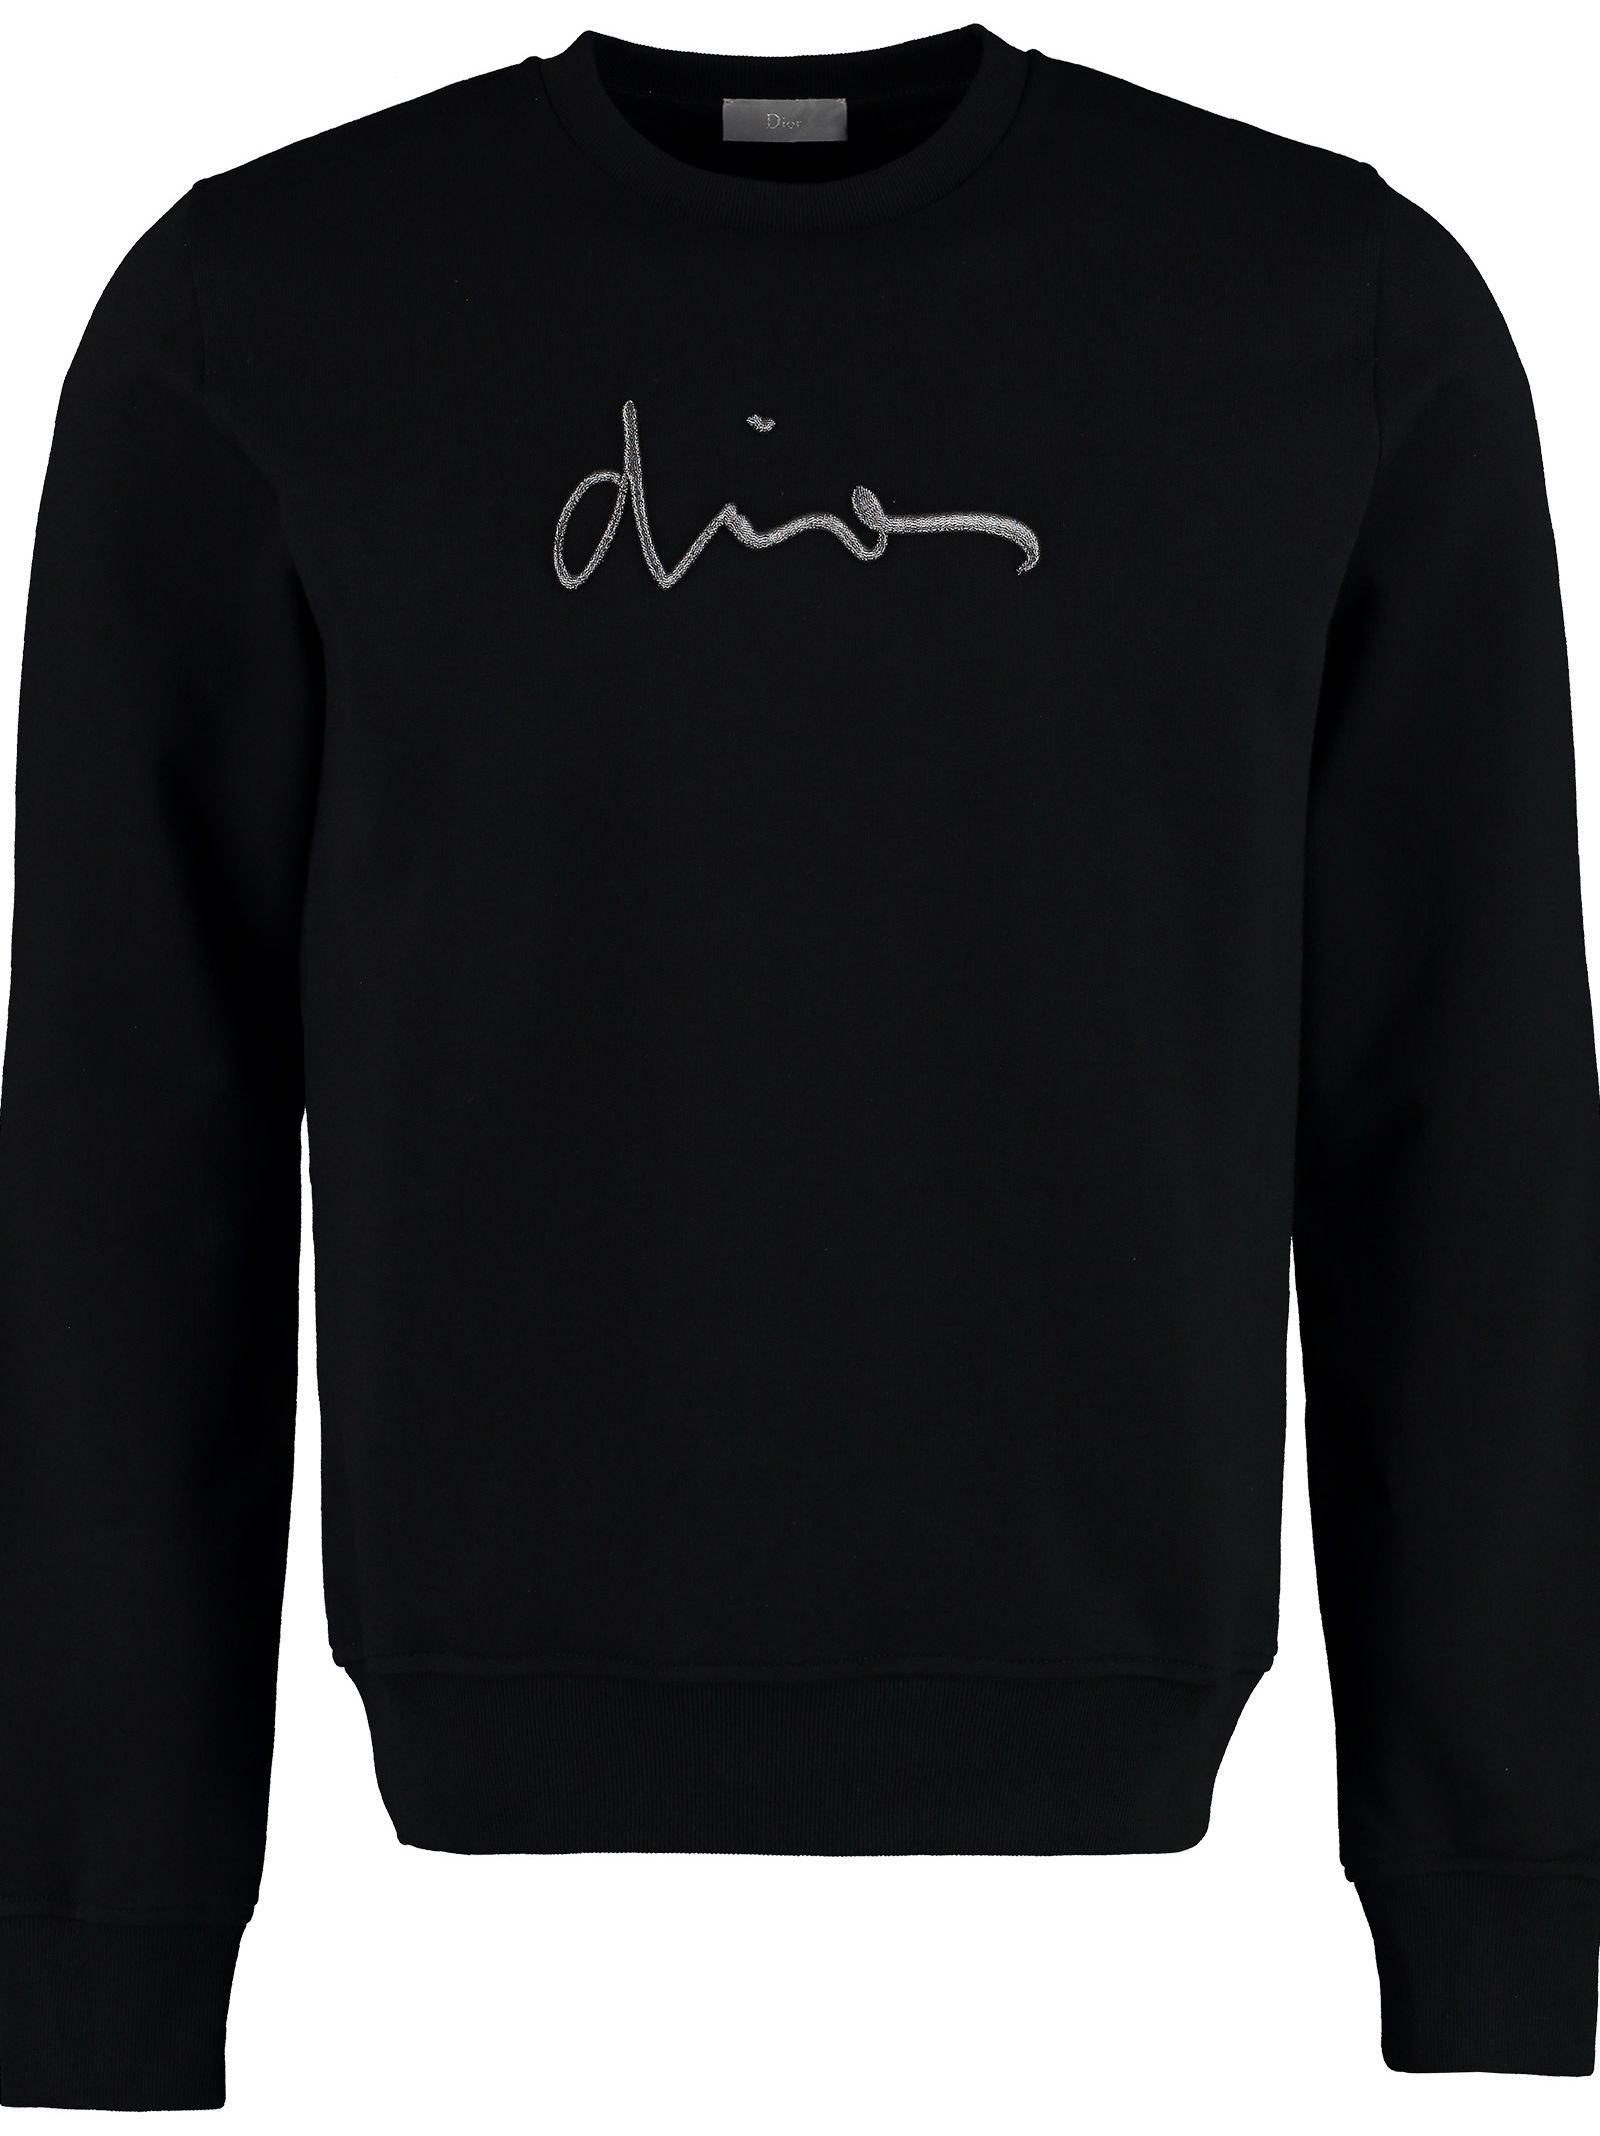 252fbfef7b6 DIOR HOMME  DIOR  EMBROIDERY COTTON SWEATSHIRT.  diorhomme  cloth ...